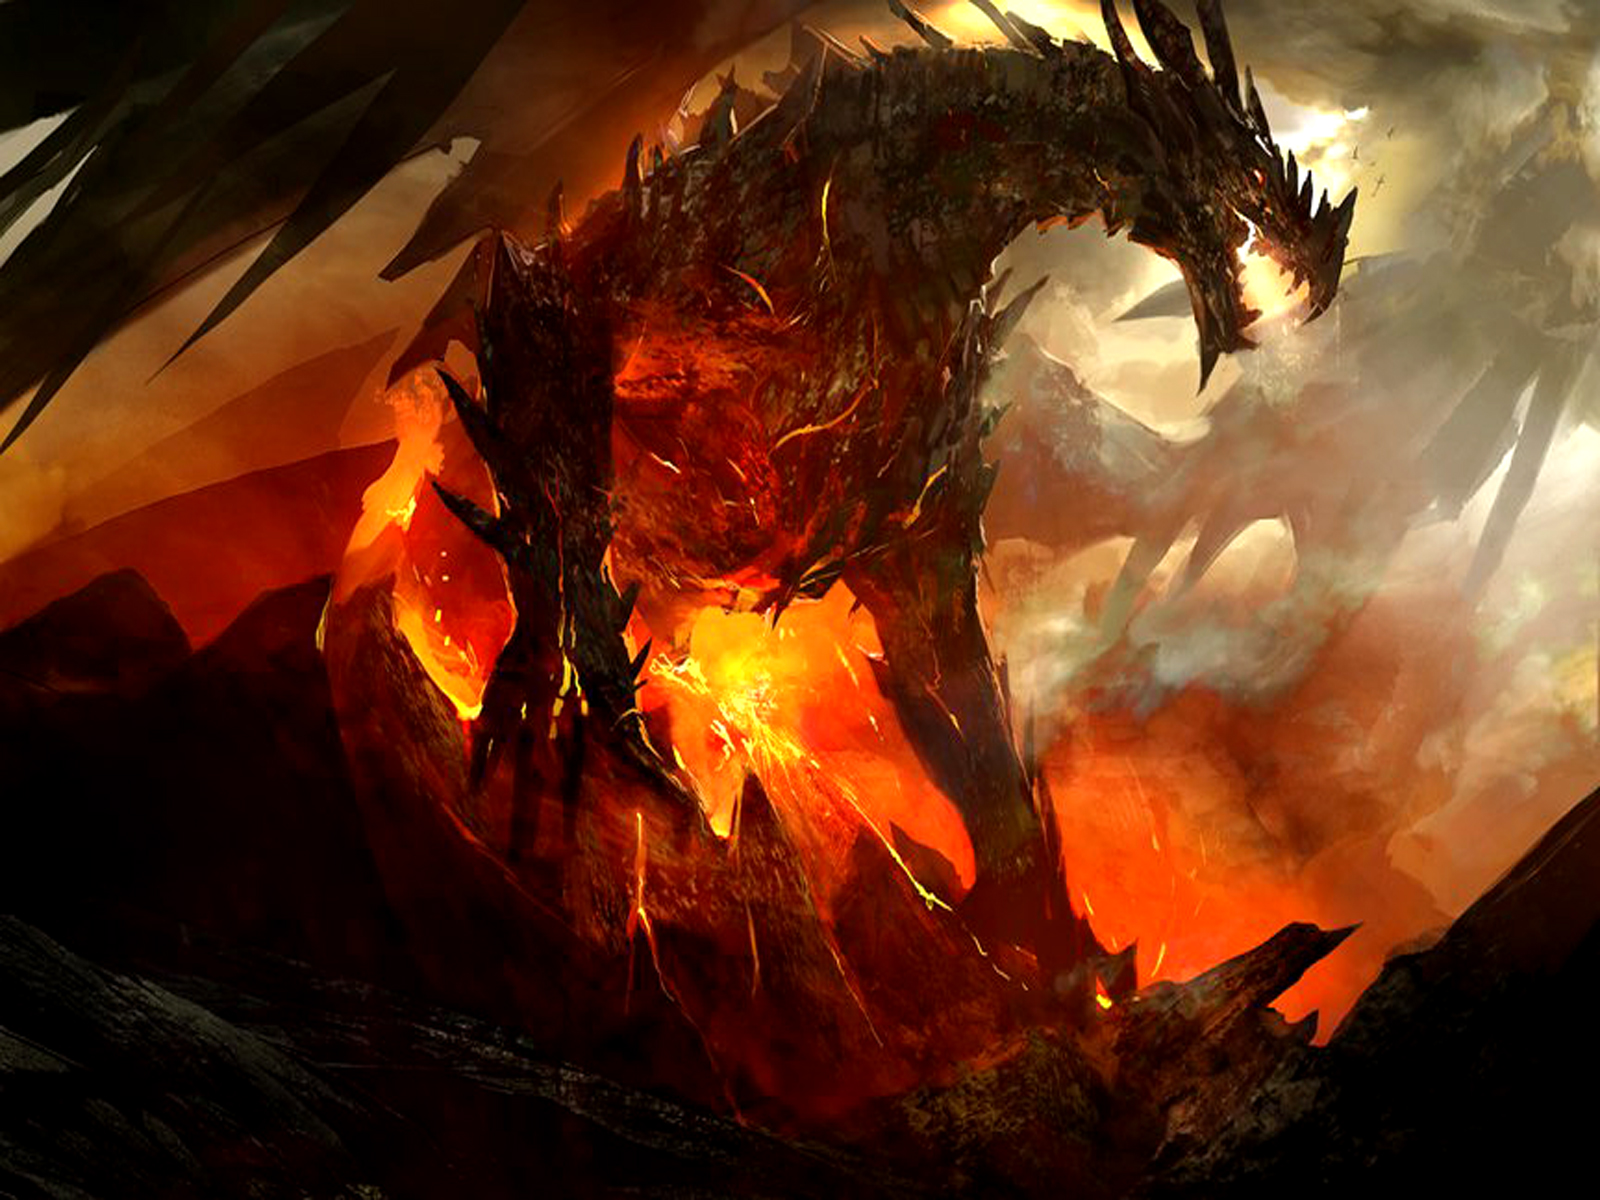 Dragon HD Wallpapers Dragon Pictures Cool Wallpapers 1600x1200